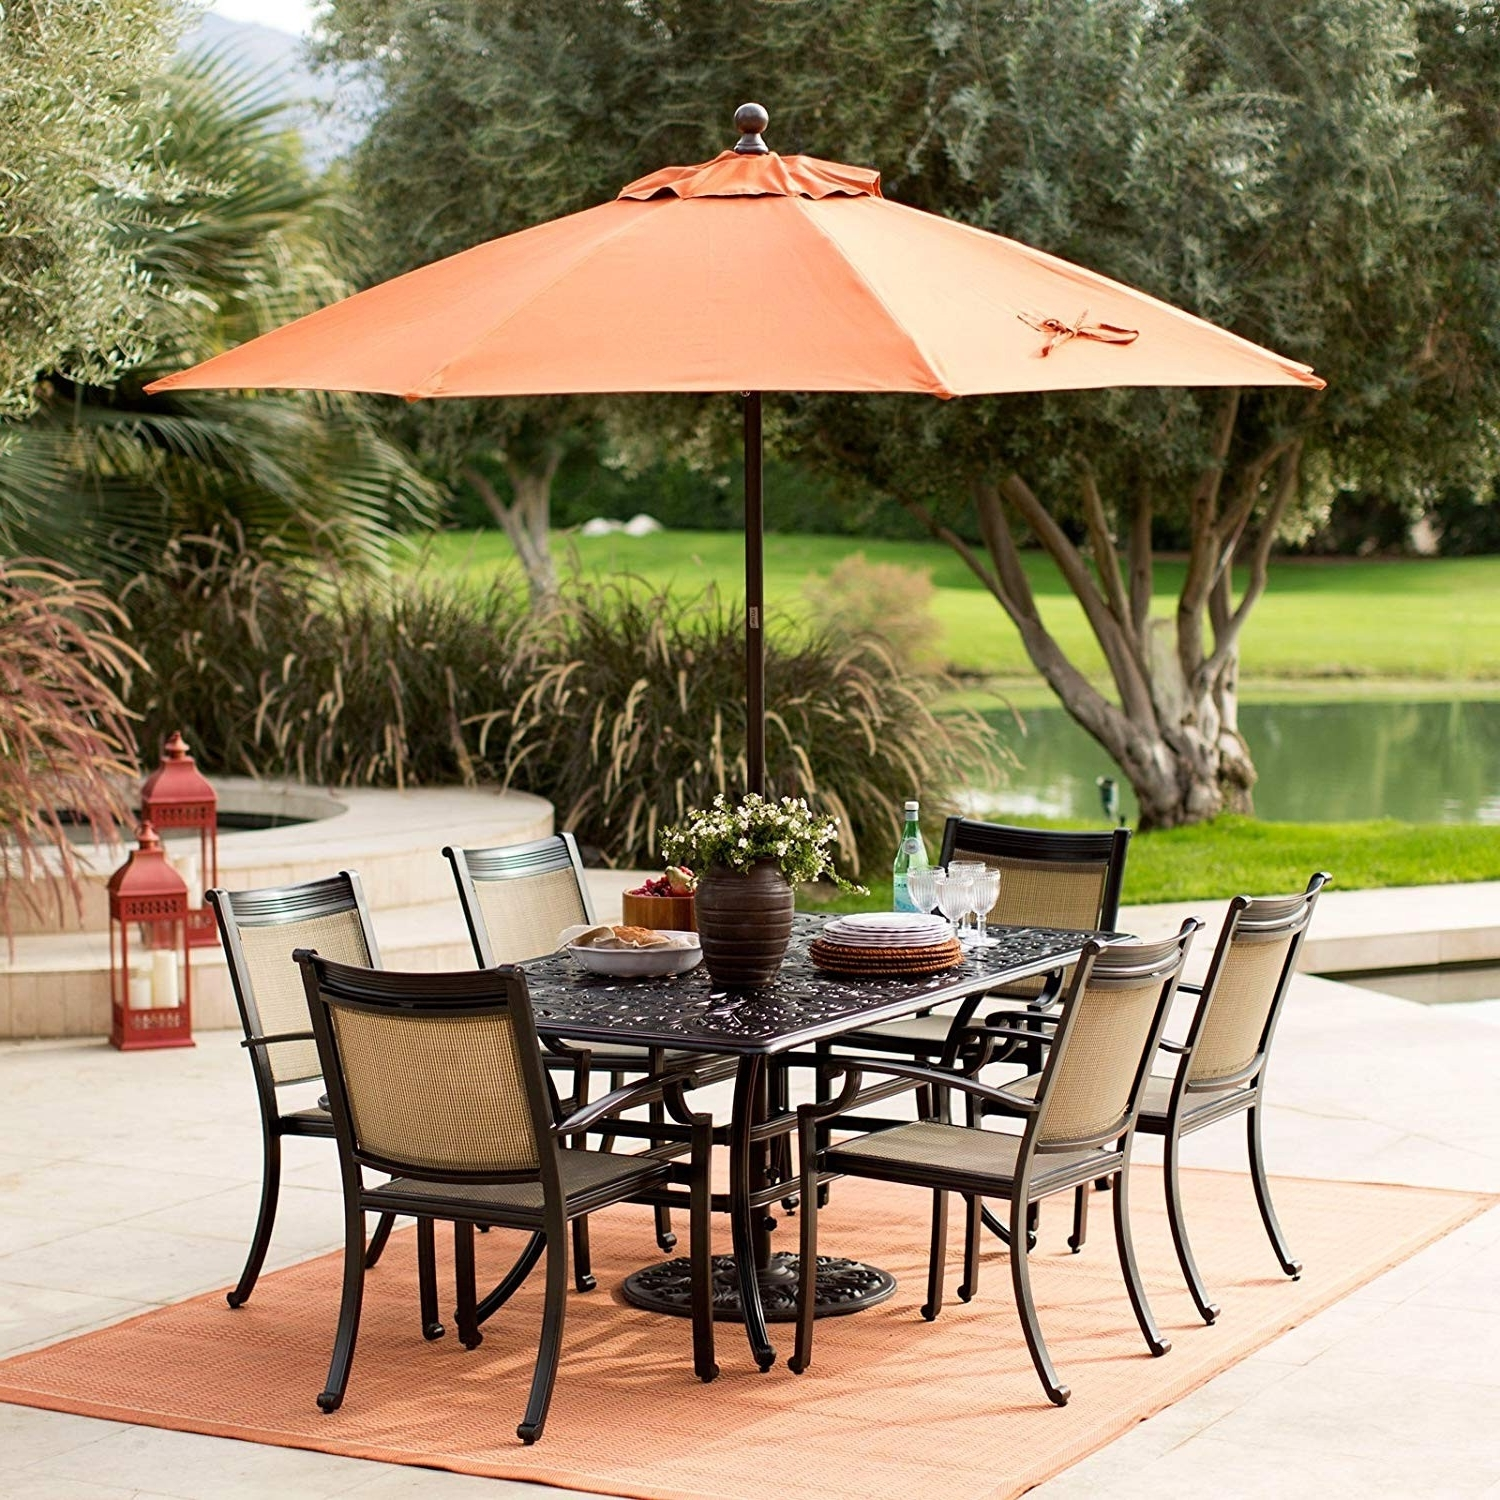 Amazon Patio Umbrellas Regarding Well Known Garden Treasures Patio Umbrella Reviews Unique Amazon Tourke 9Ft Led (View 5 of 20)